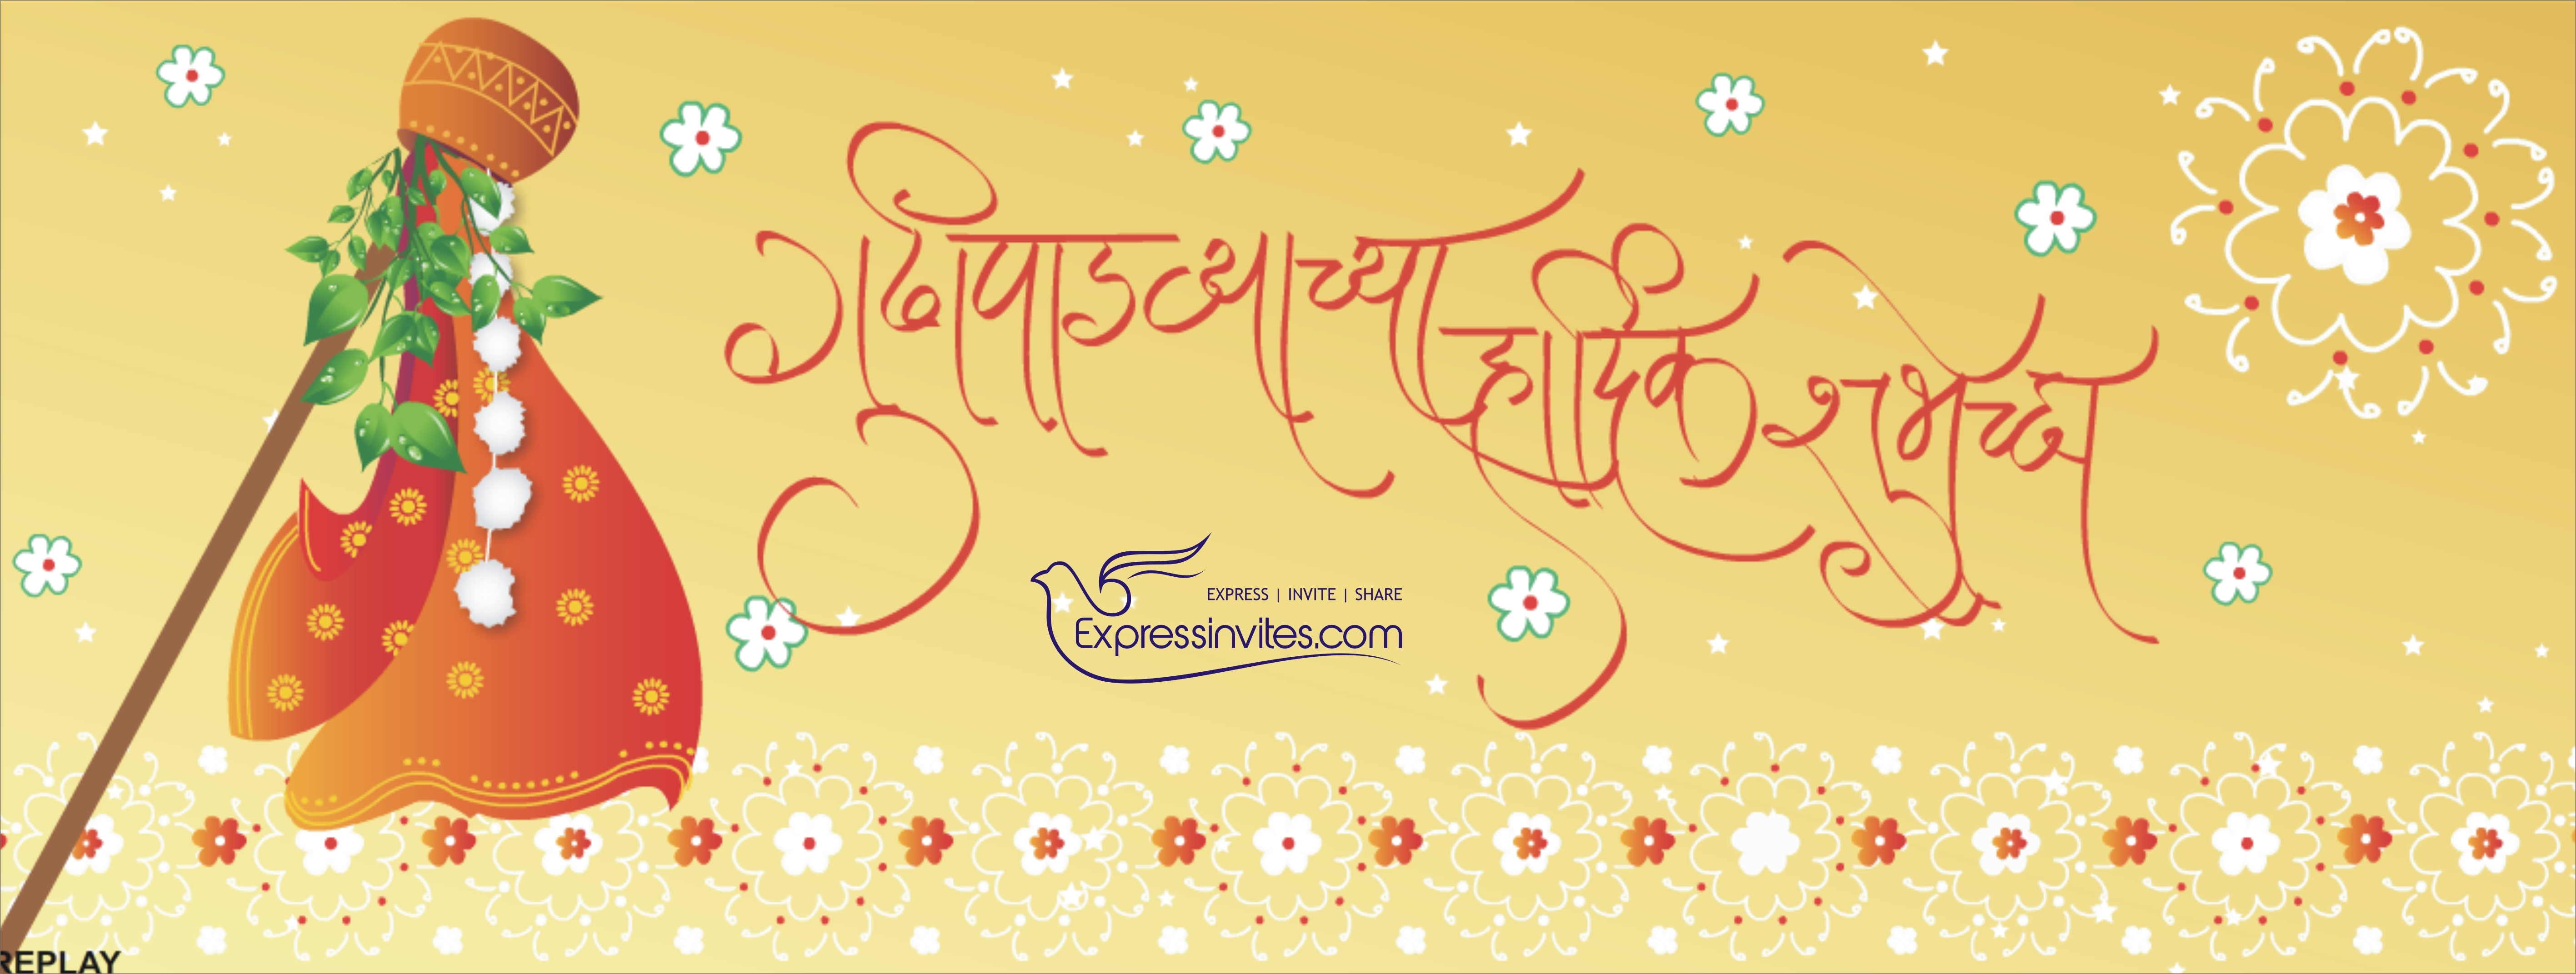 27 wonderful gudi padwa wishes pictures gudi padwa greetings m4hsunfo